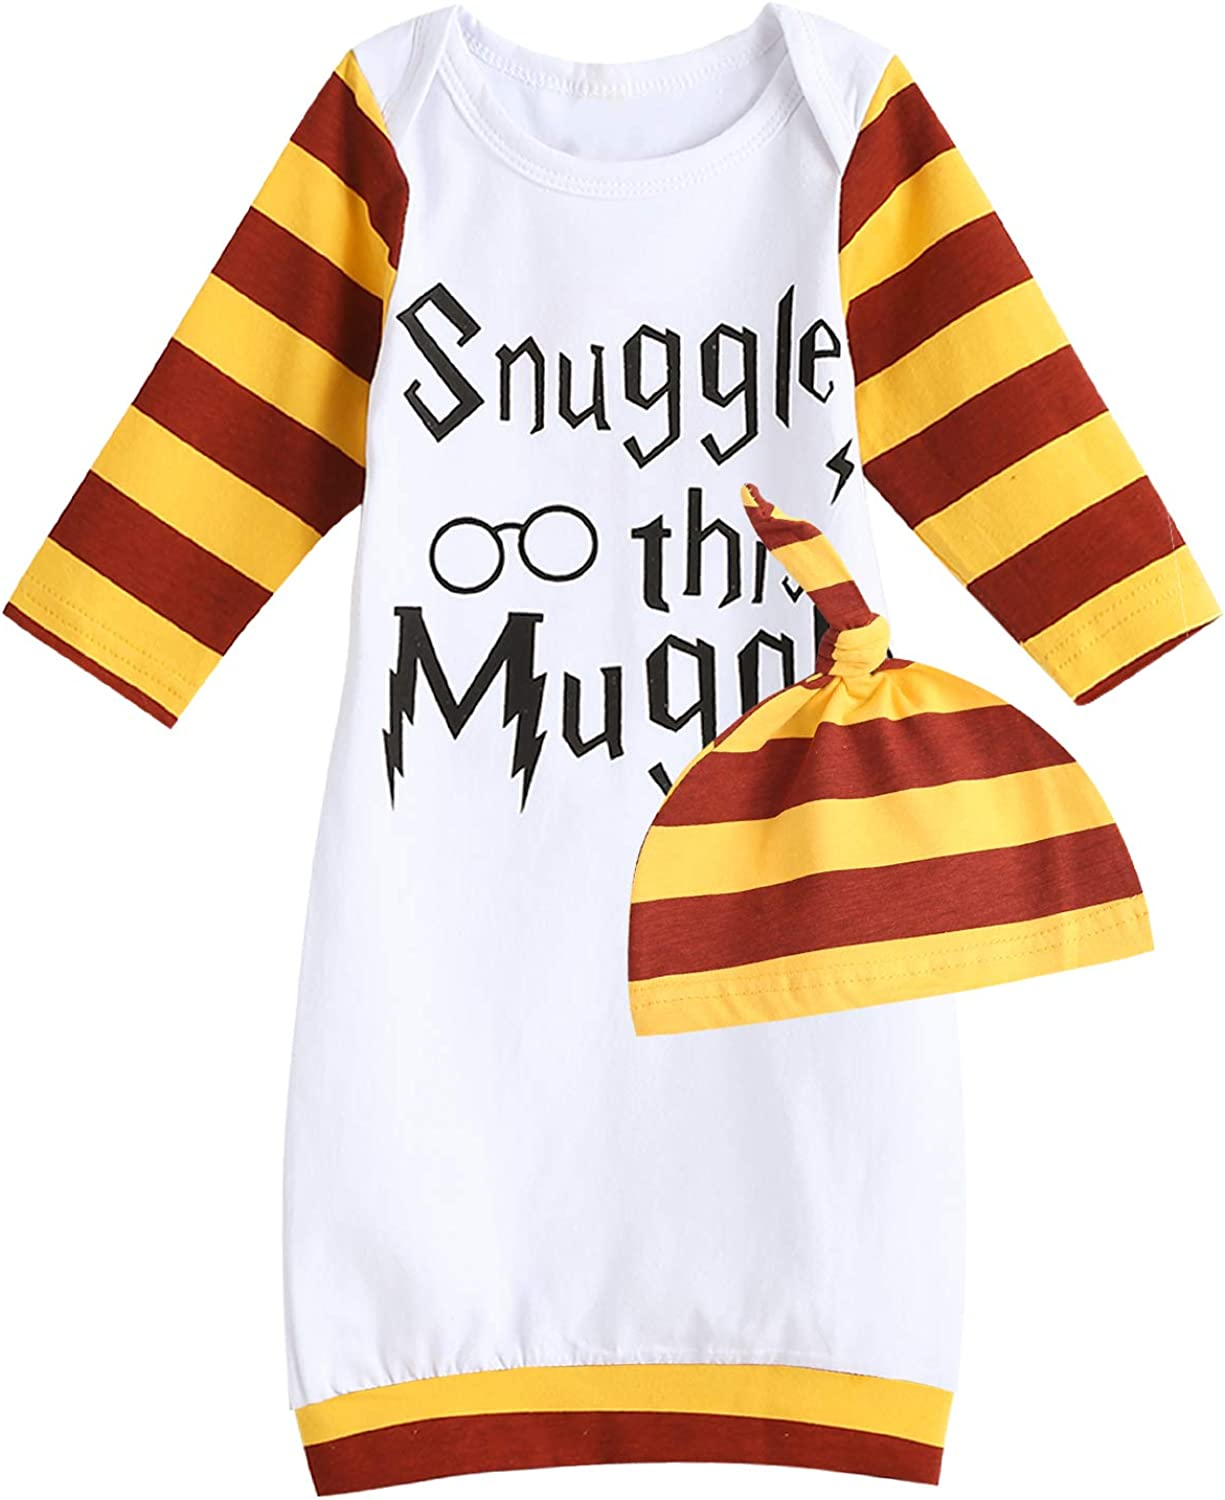 Funny Newborn Baby Gown Layette Baby Boy Girl Sleepwear Soft Sleepers Coming Home Outfits